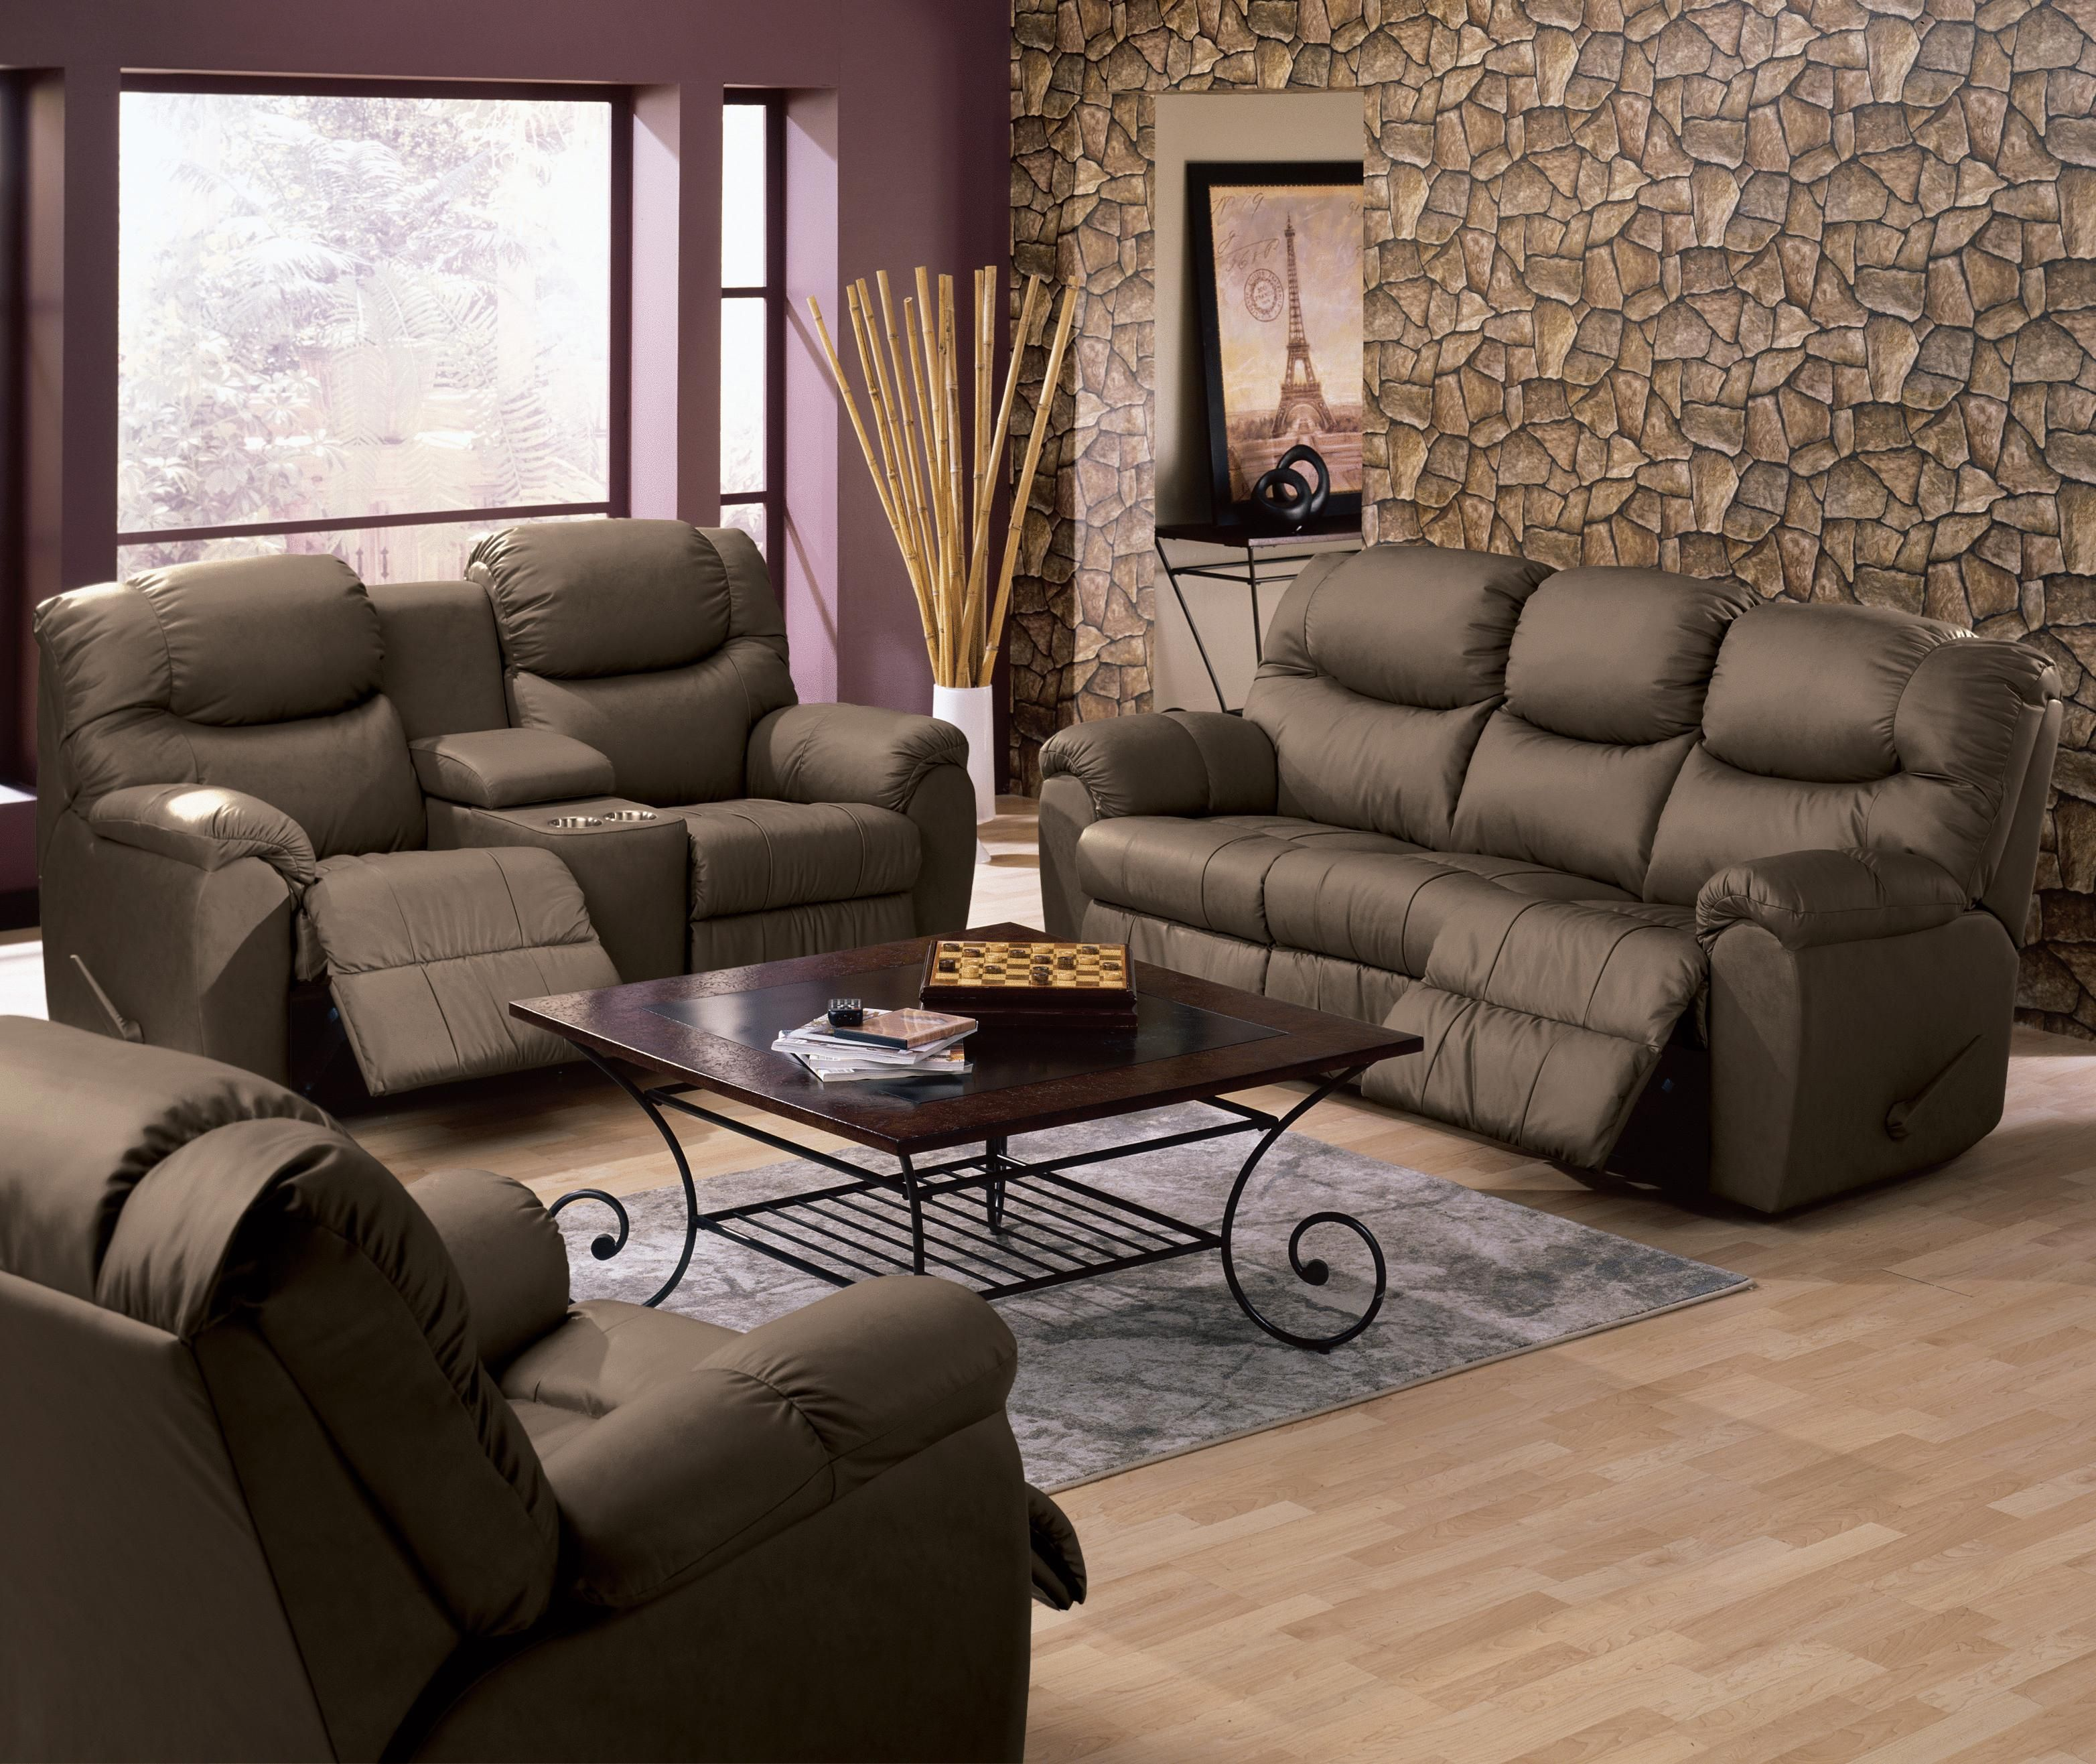 Relax and recline with this furniture set from turk furniture recline sofa decor